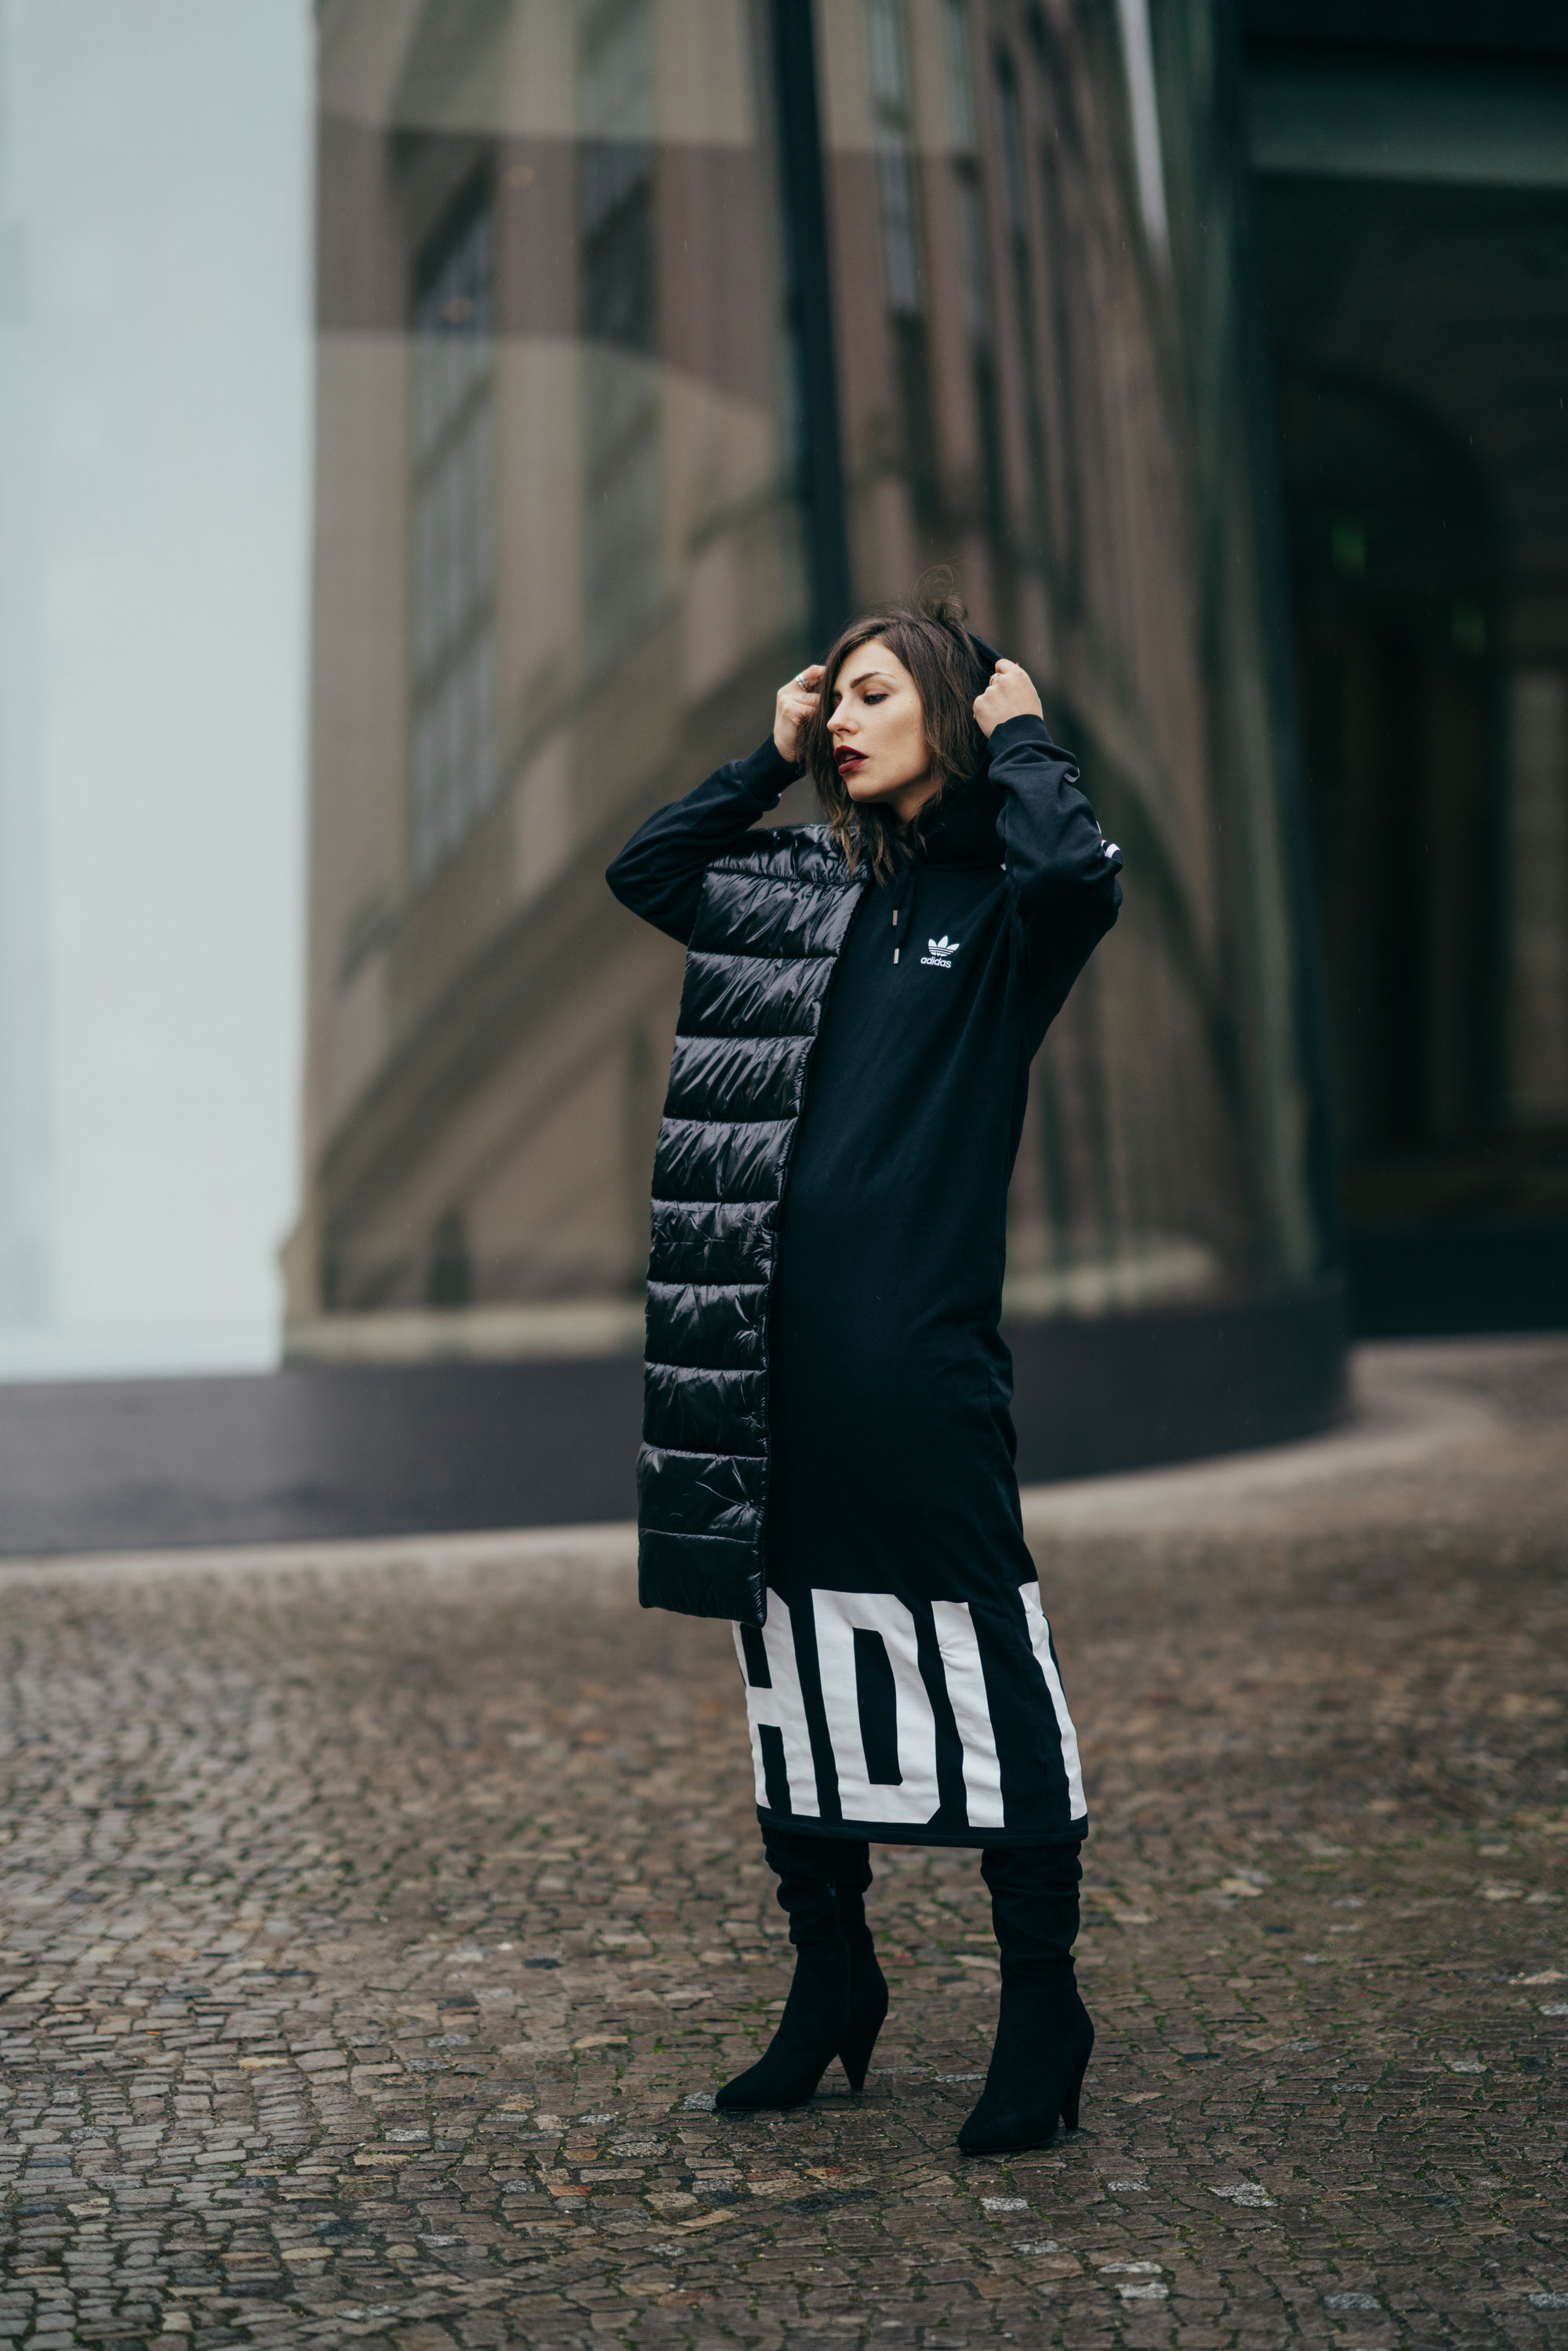 Zalando Style of the Day | Masha Sedgwick | Street Style | Fashion | brands: Topshop, Ivy Revel, Vans, Selected Femme, The Kooples, Holzweiler | Berlin | Street Wear | daily, casual, effortless, easy, sexy, sporty, office, chic, tomboy, relaxed, cool | weekly update | 2018 | Adidas dress